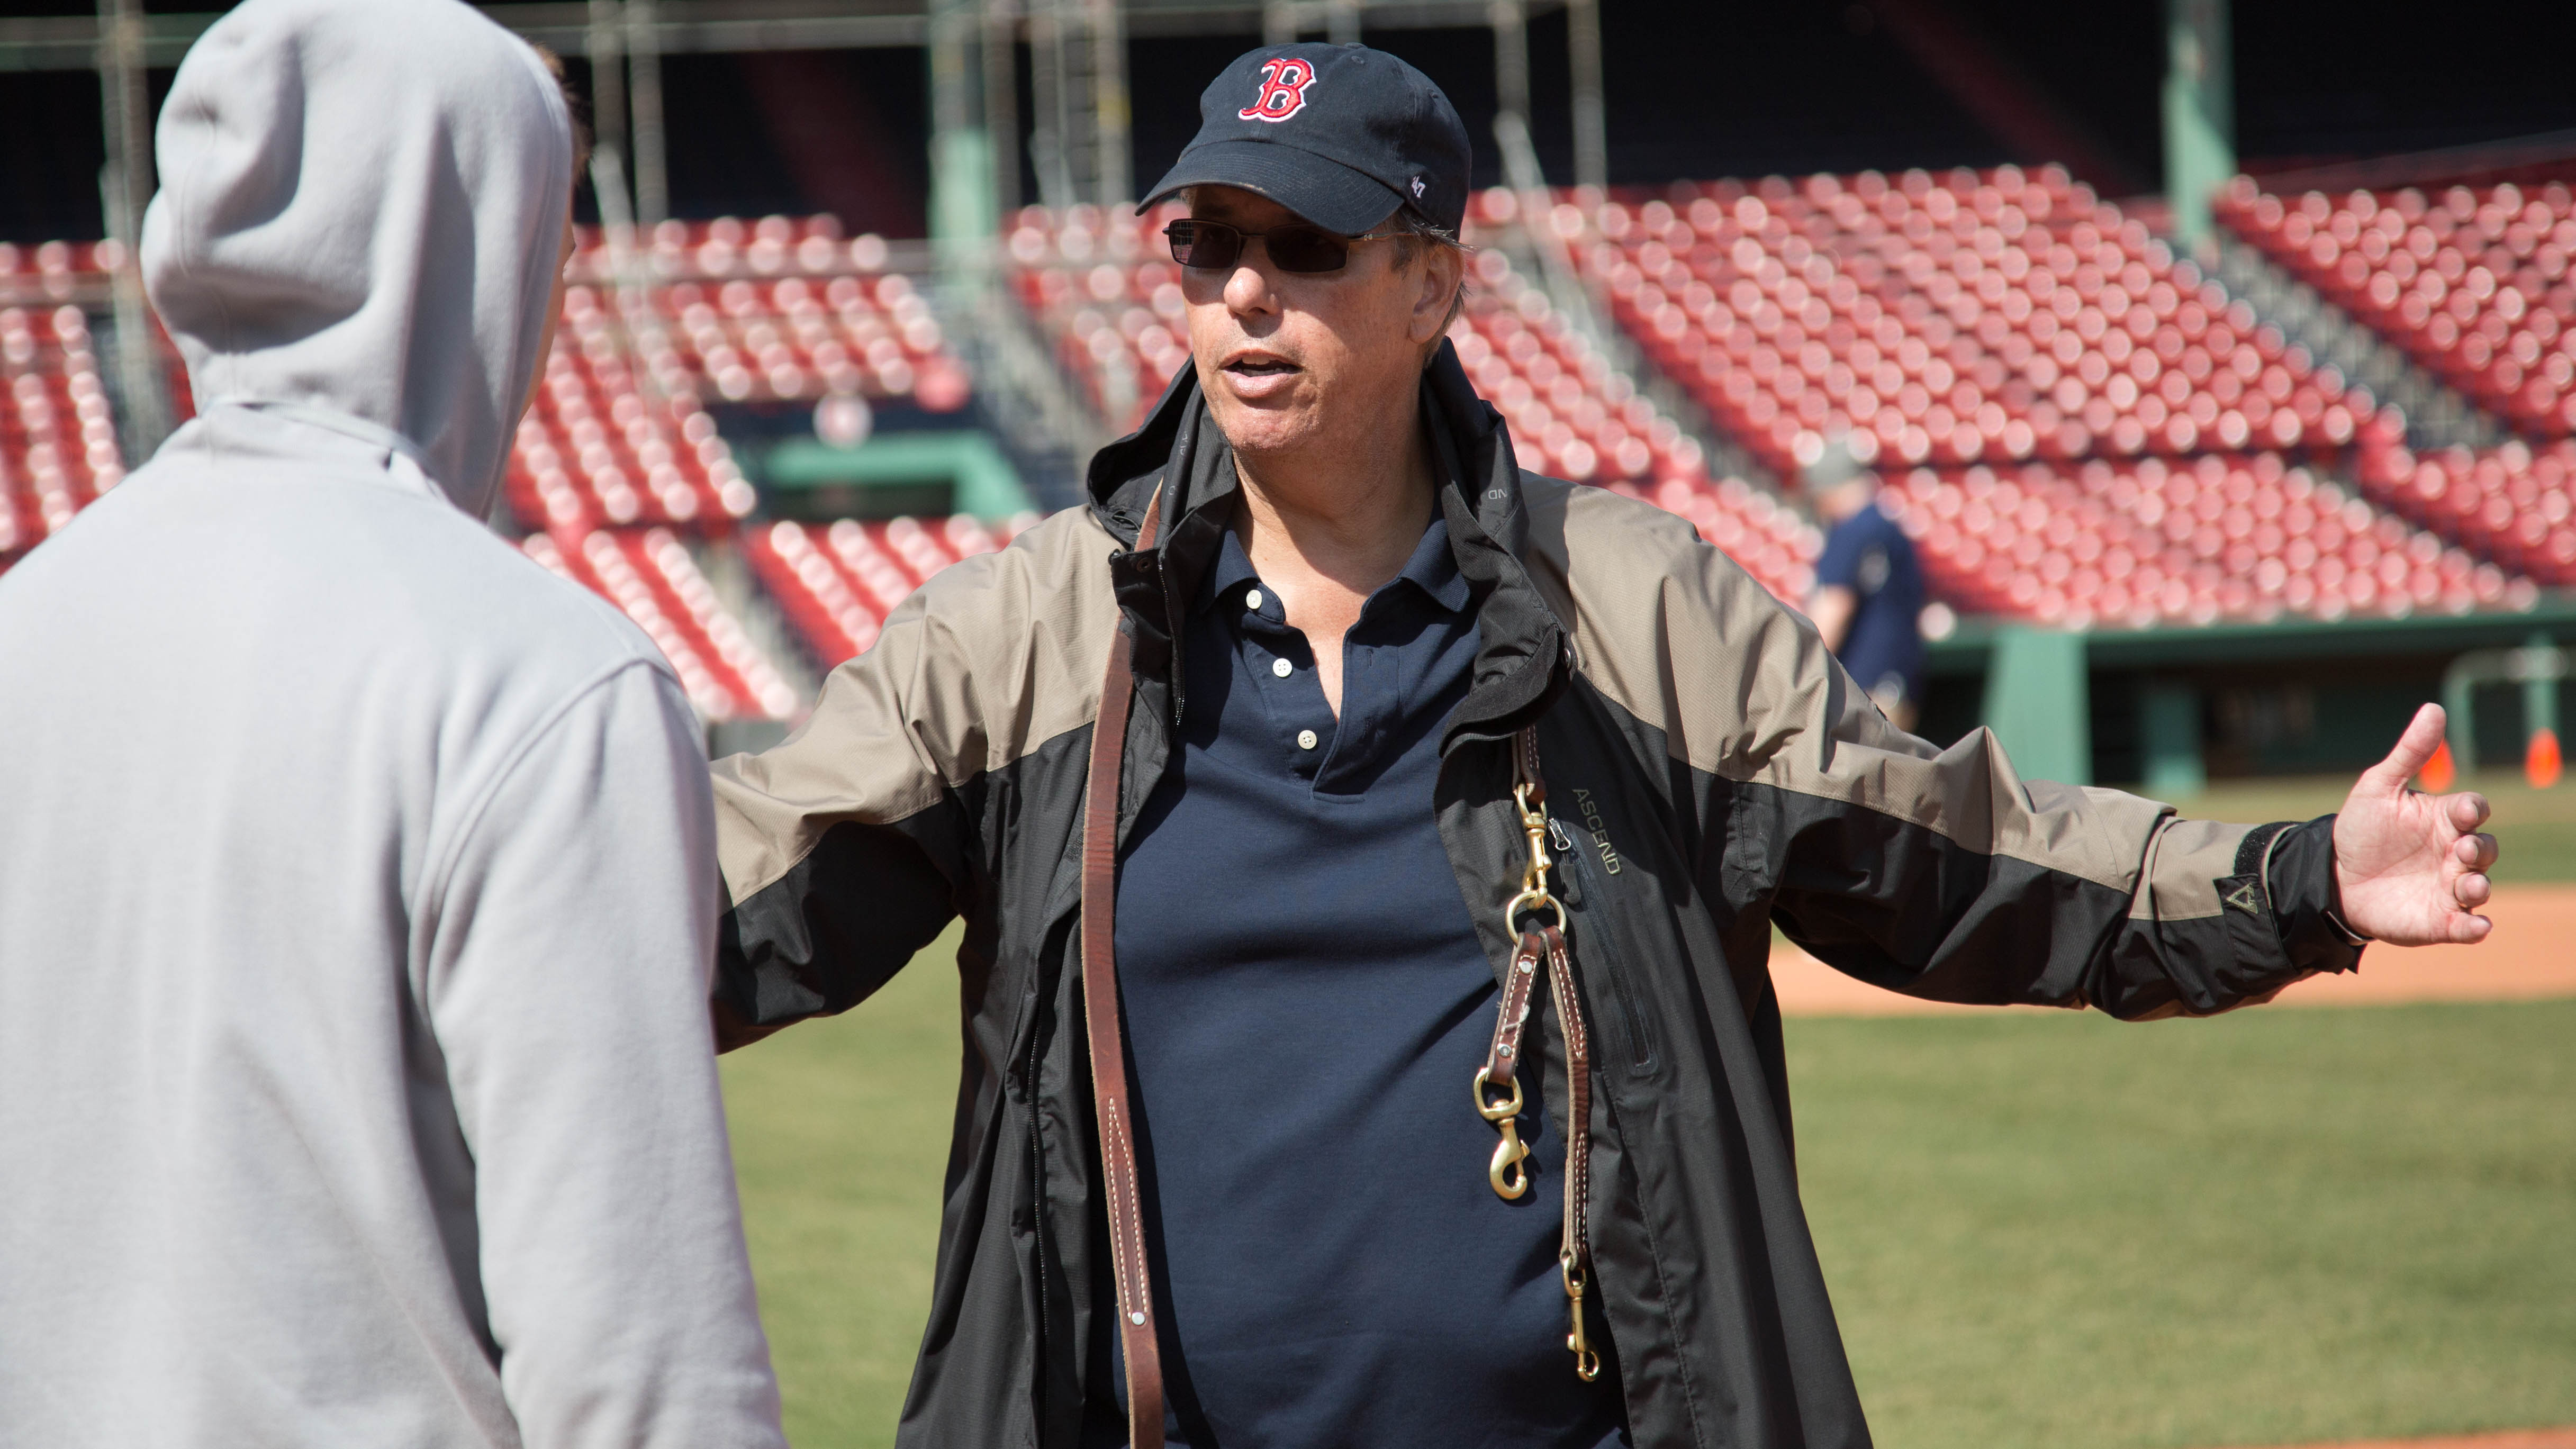 Dave Mellor has been Fenway Park's groundskeeper since 2001.